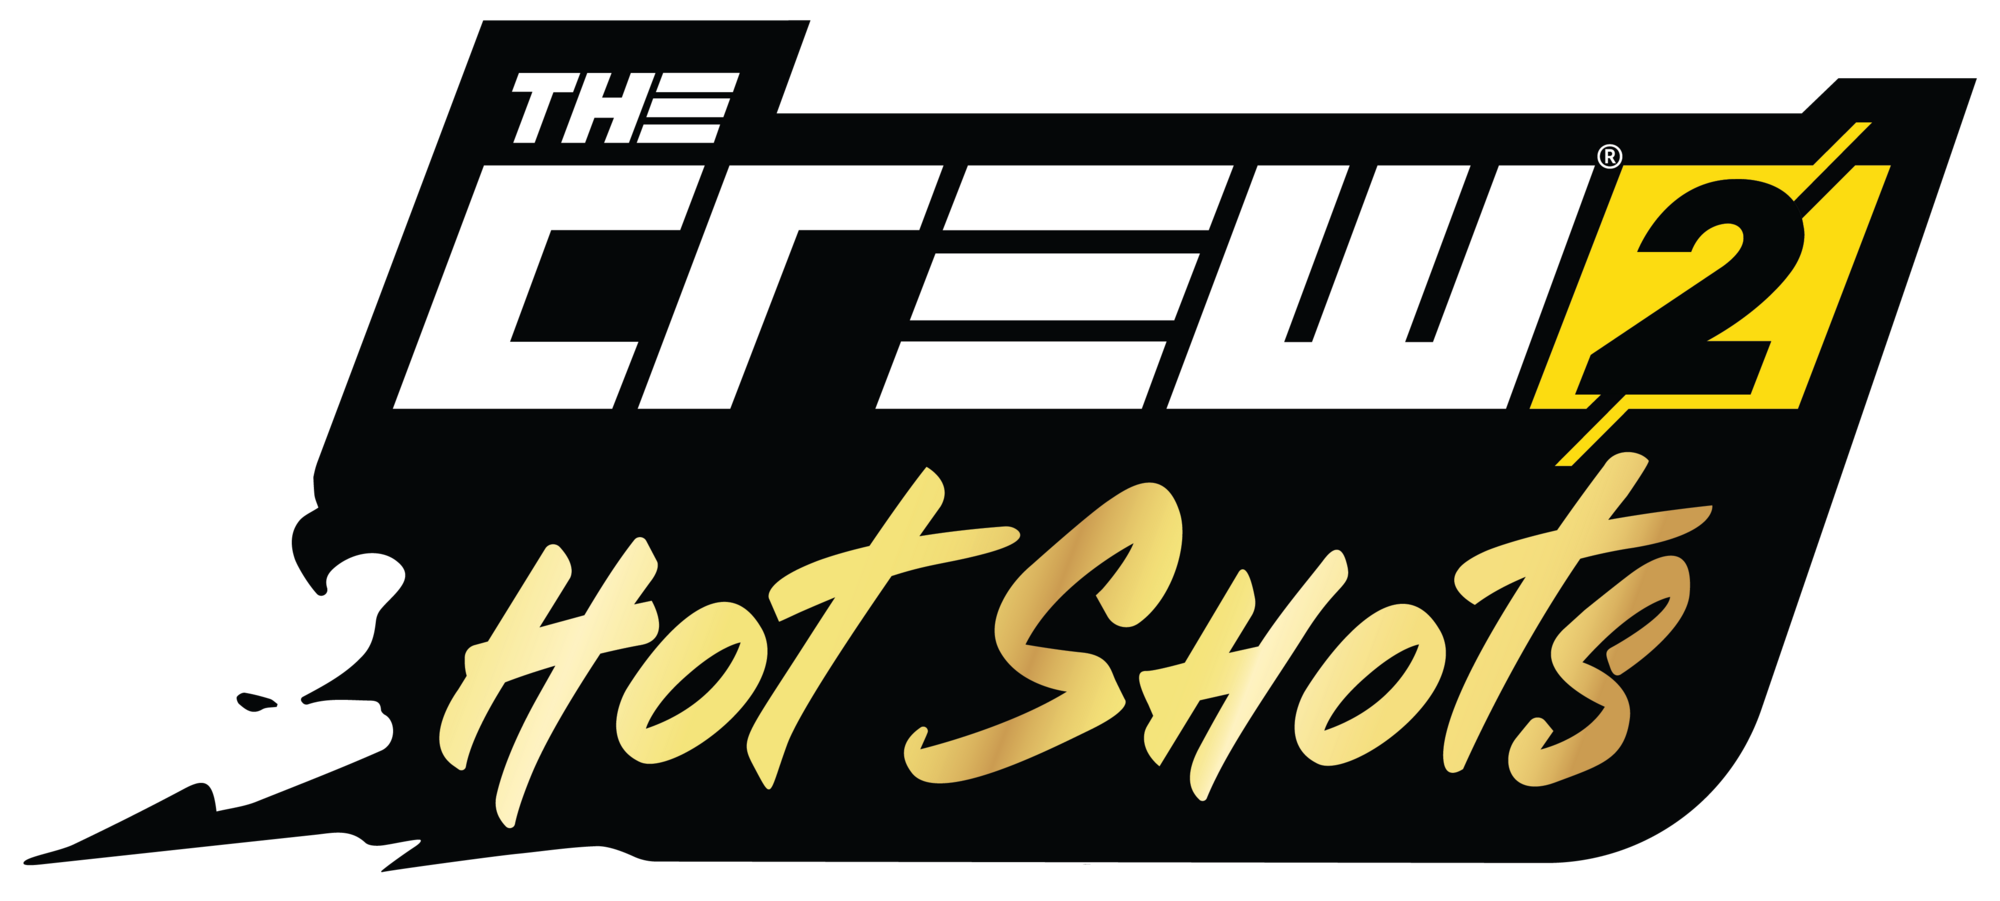 Hot Shots The Crew Wiki Fandom Powered By Wikia